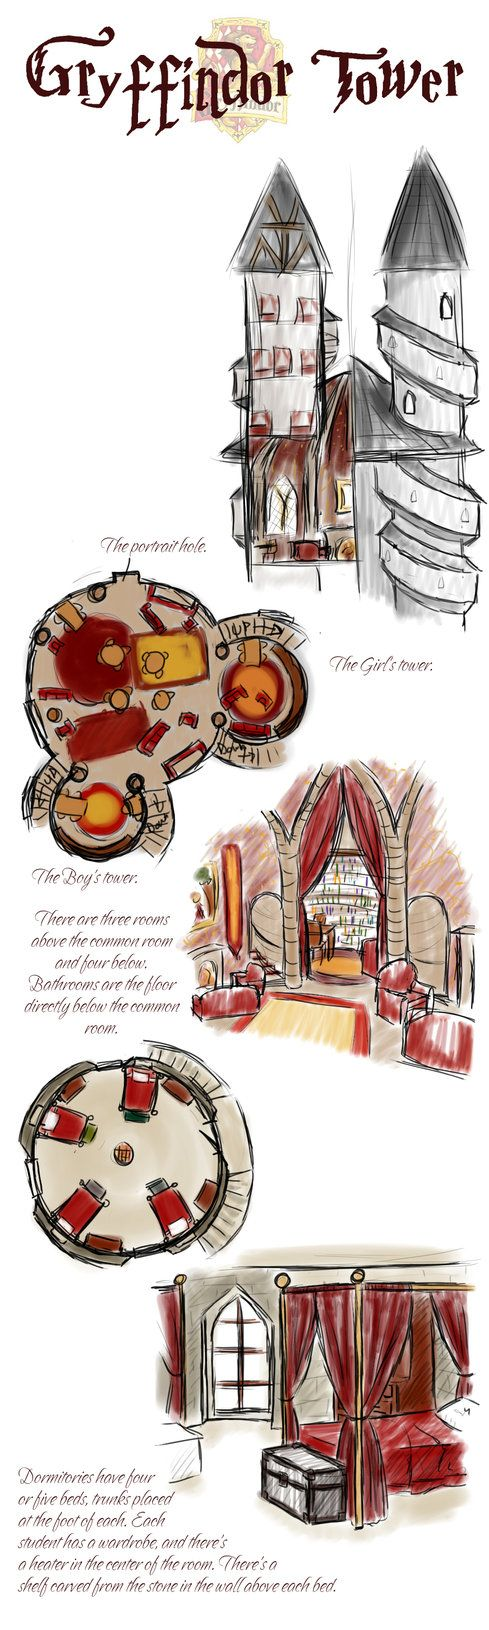 Gryffindor Tower by *Whisperwings. What the Gryffindor Tower might look like. I would like to be assigned to this house or Ravenclaw. Alas, never got a letter.